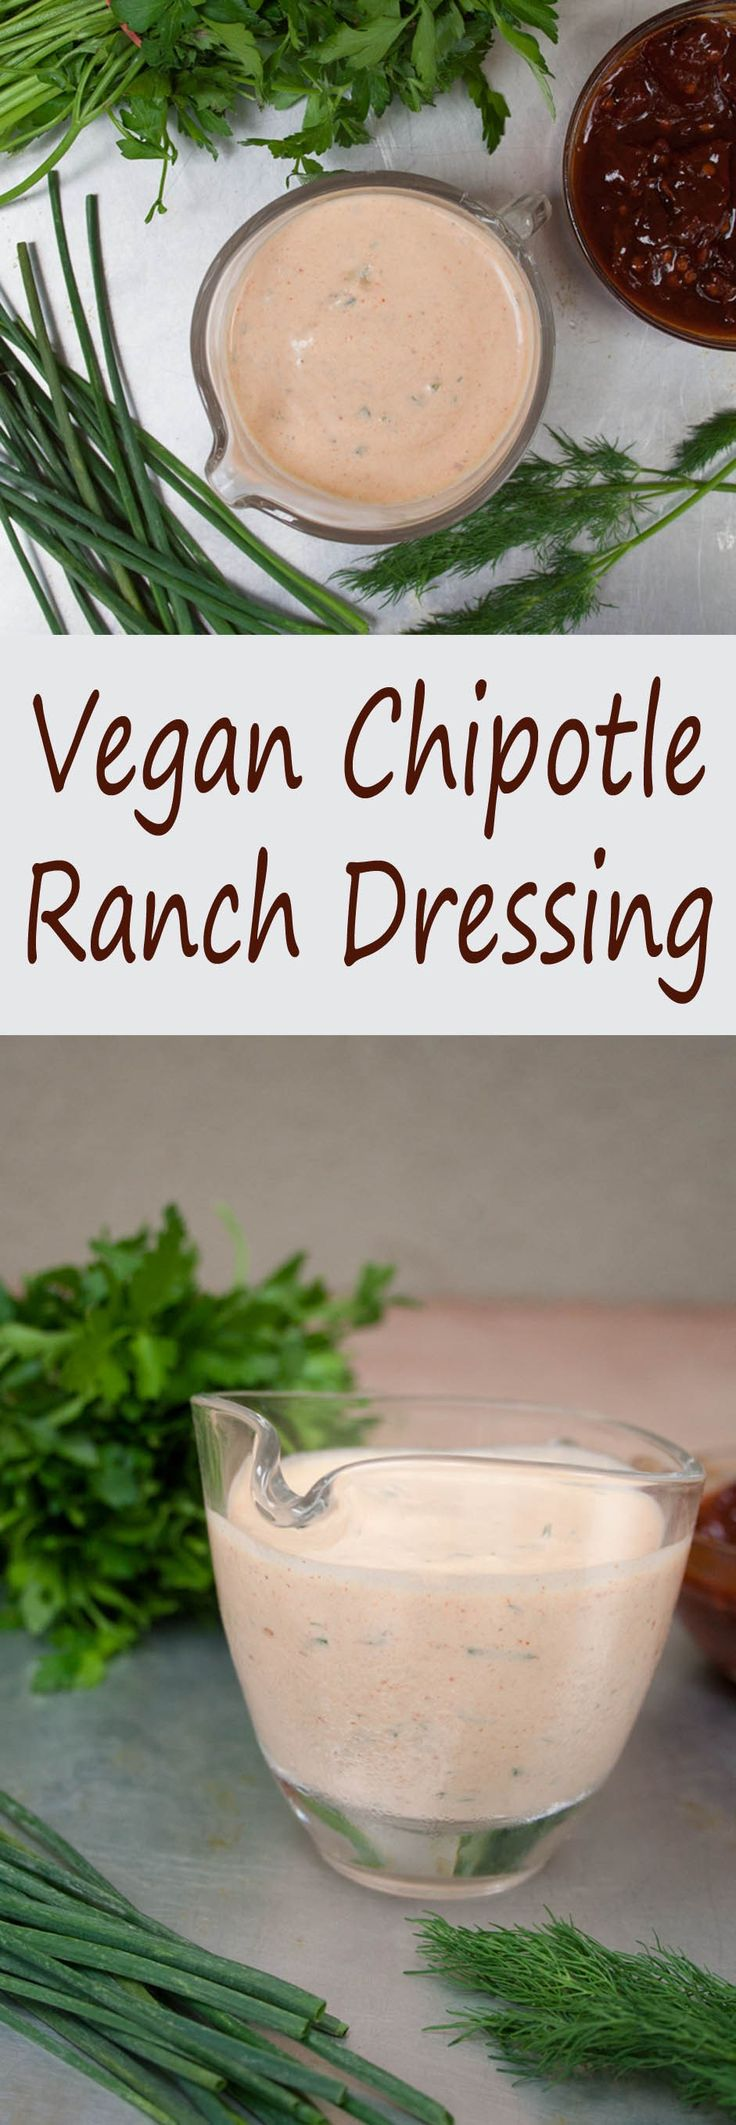 Vegan Chipotle Ranch Dressing (vegan, gluten free) - This spicy, smoky dressing works well as a dressing or dip. Made with fresh herbs...